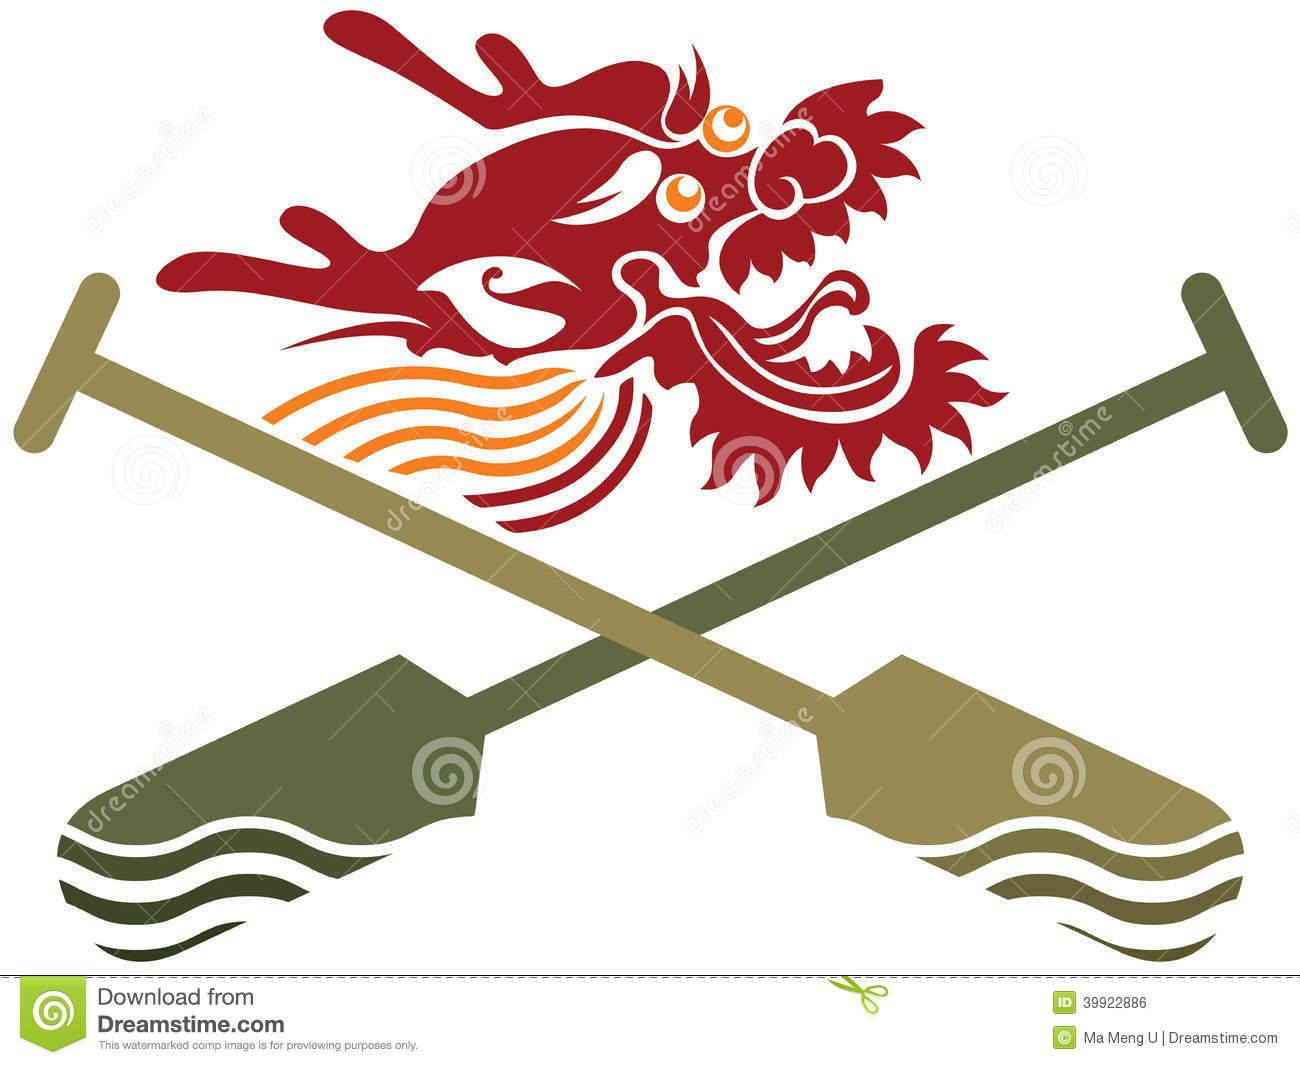 Boat clipart symbol. Sport for dragon racing